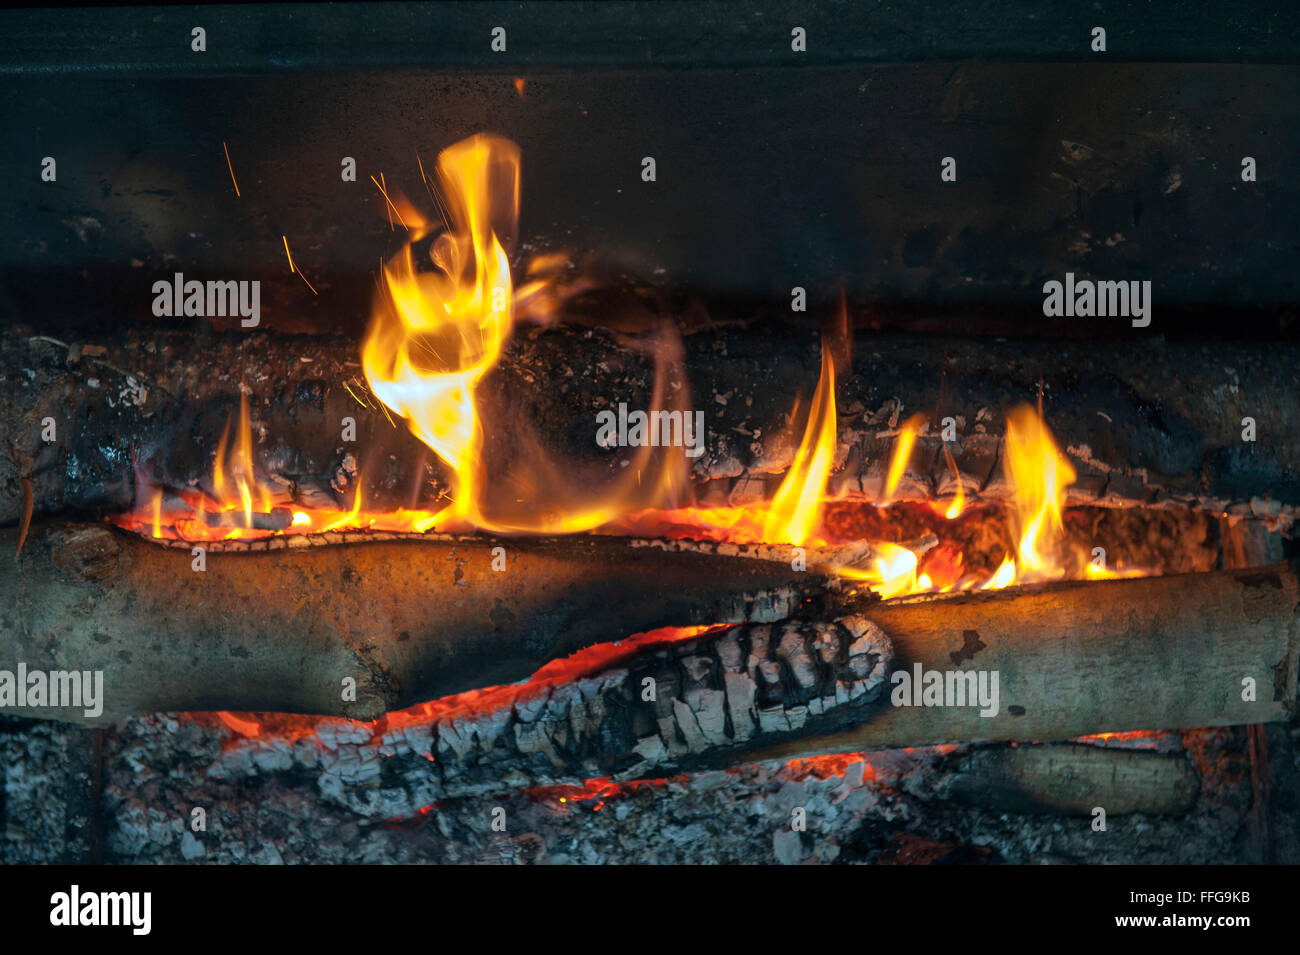 Wooden fire in old open oven England UK Europe - Stock Image